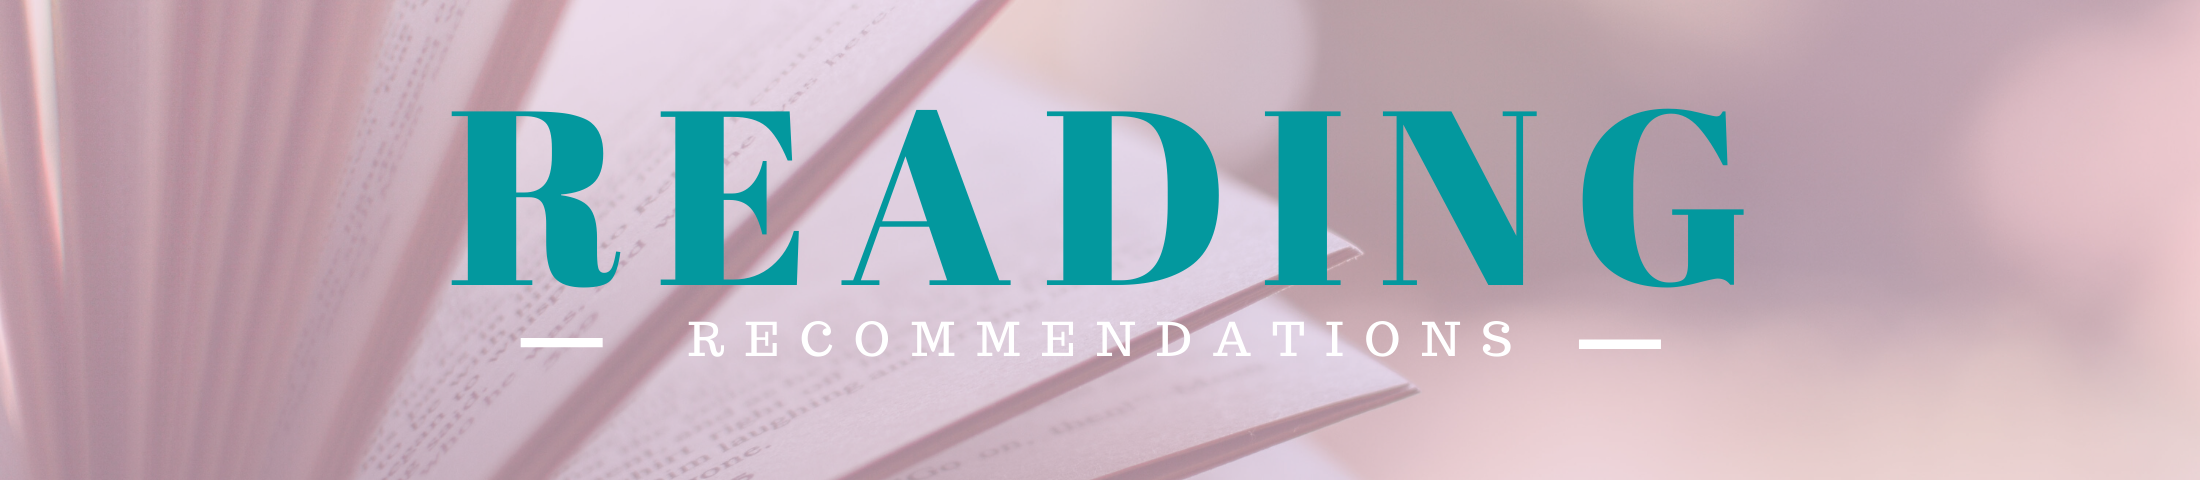 Blog Reading Recommendations